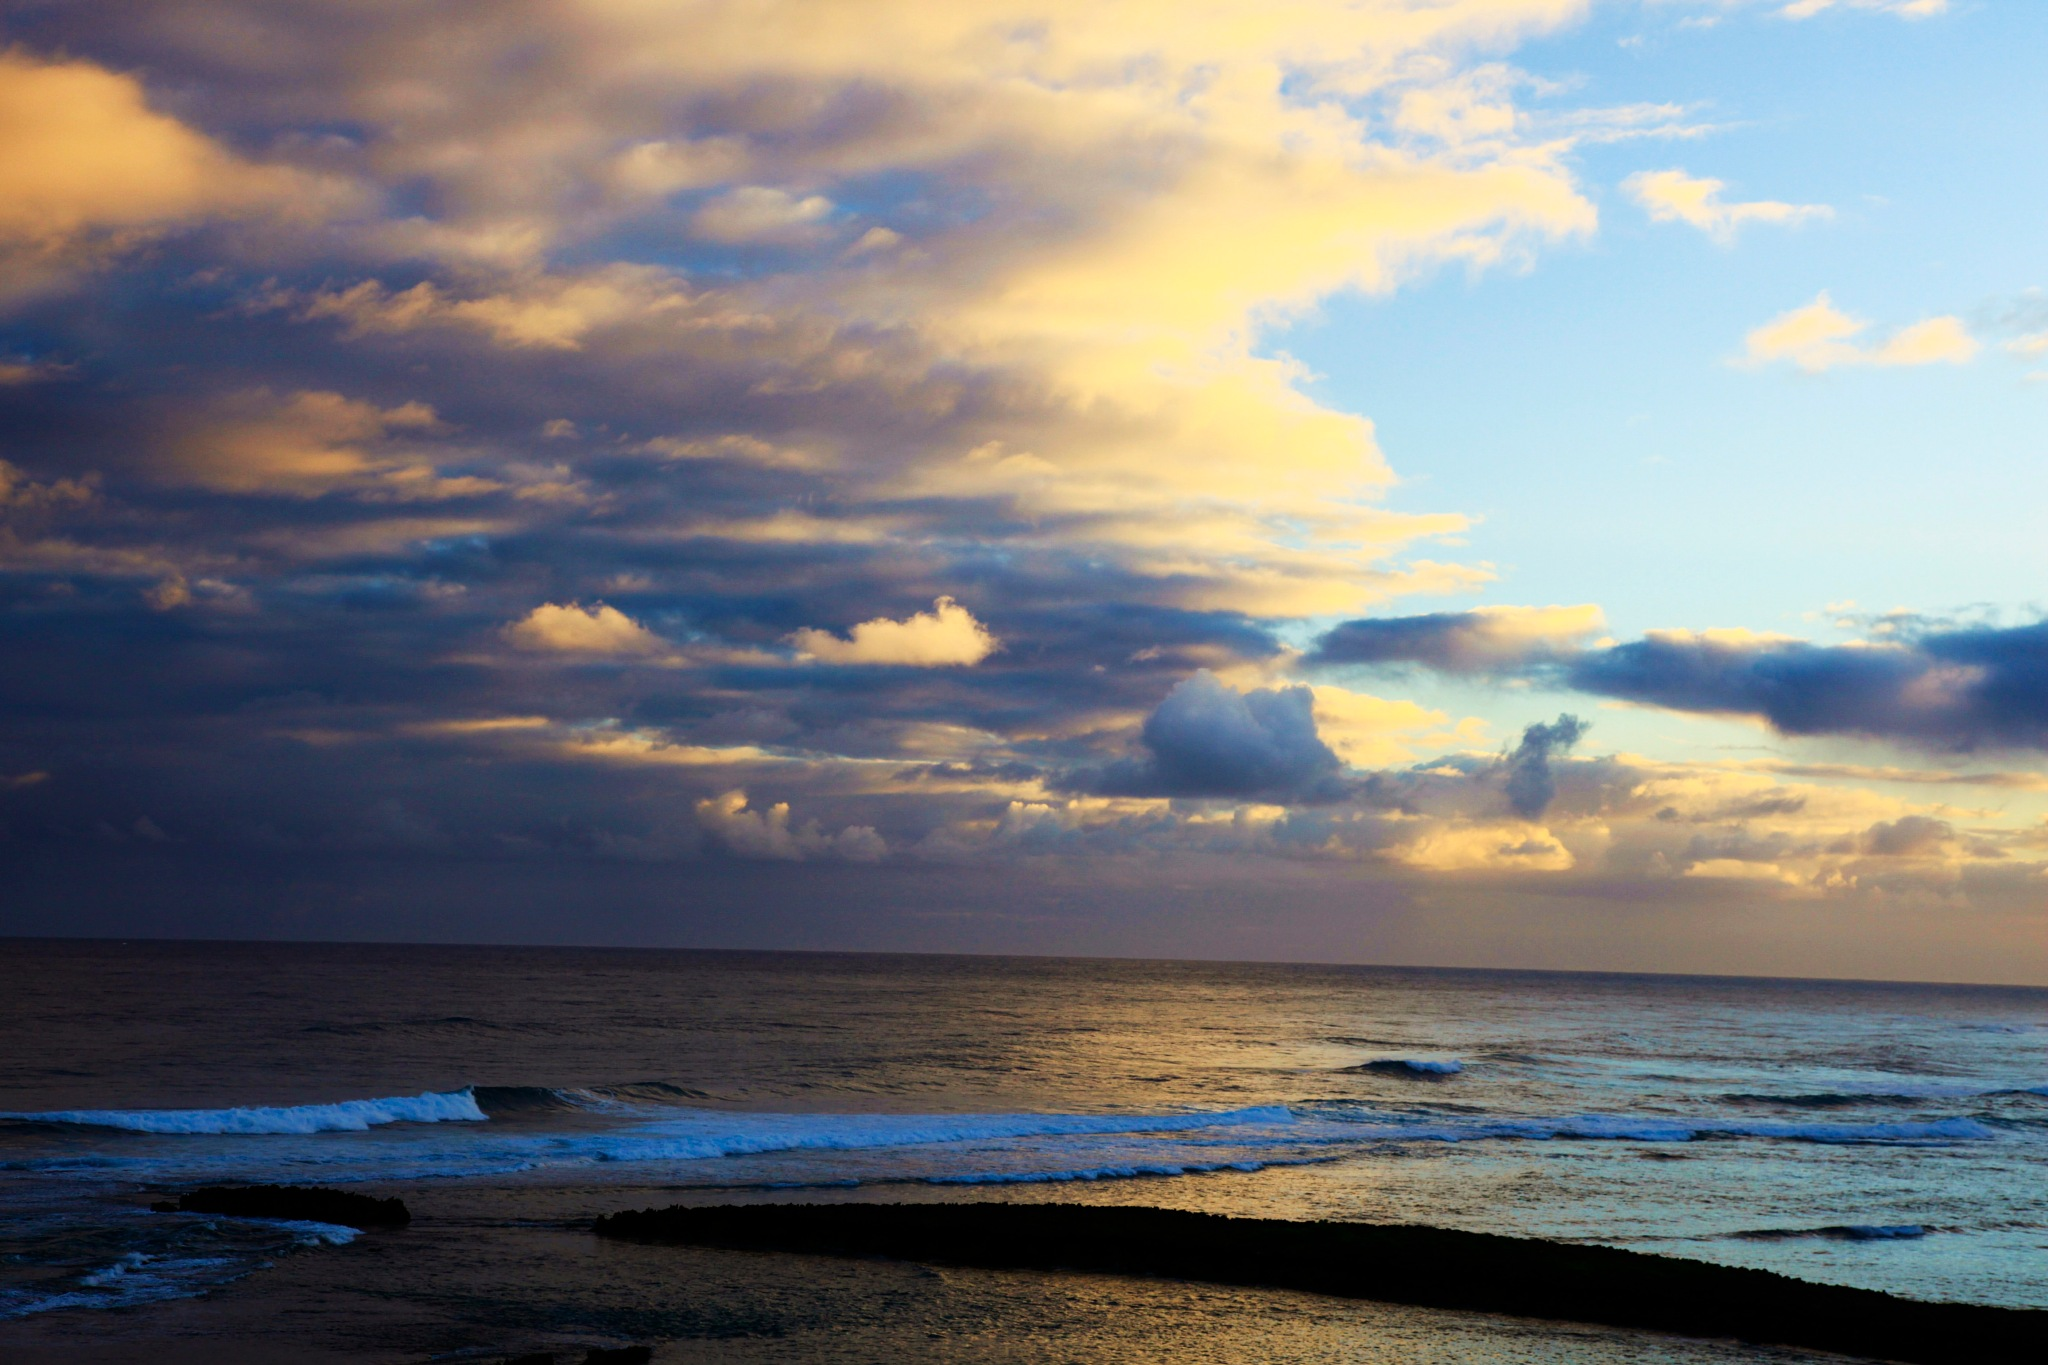 Calm after the typhoon, Oahu by Miloliidrifter